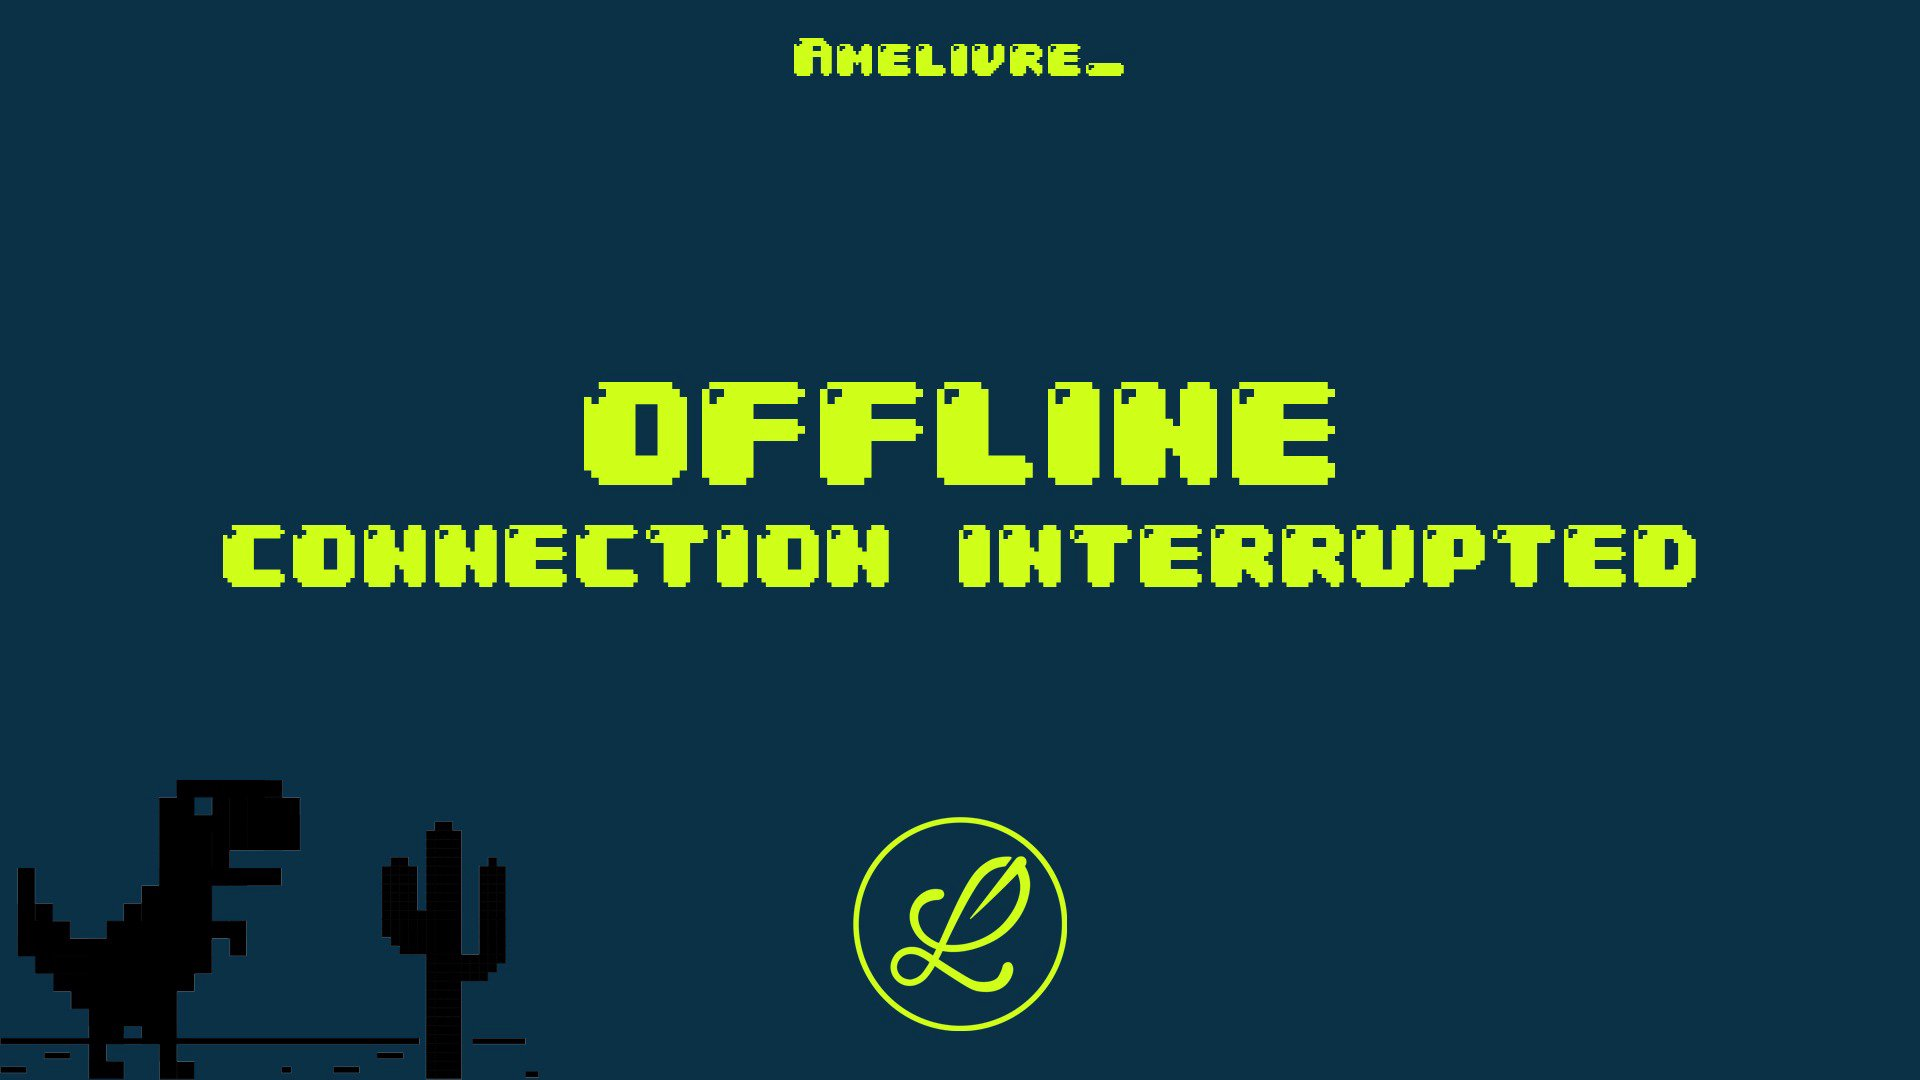 Twitch stream of Amelivre_